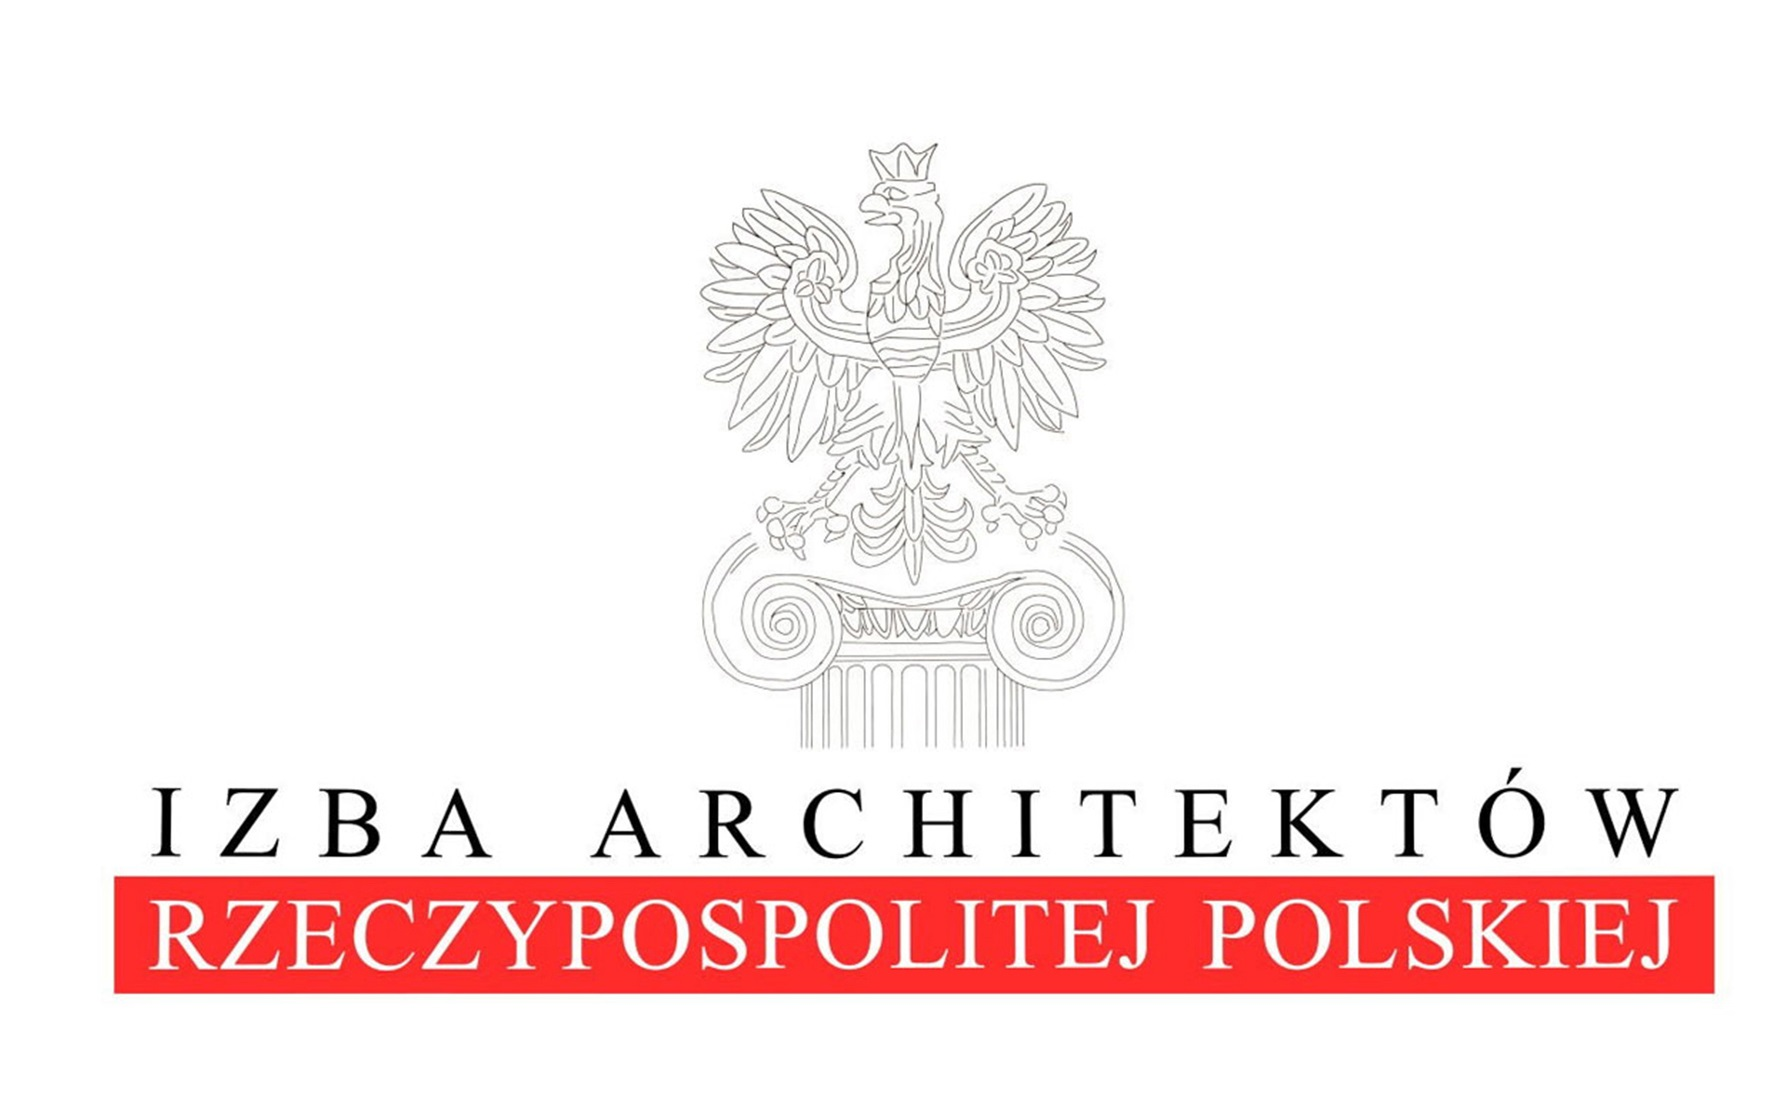 Chamber of Architects